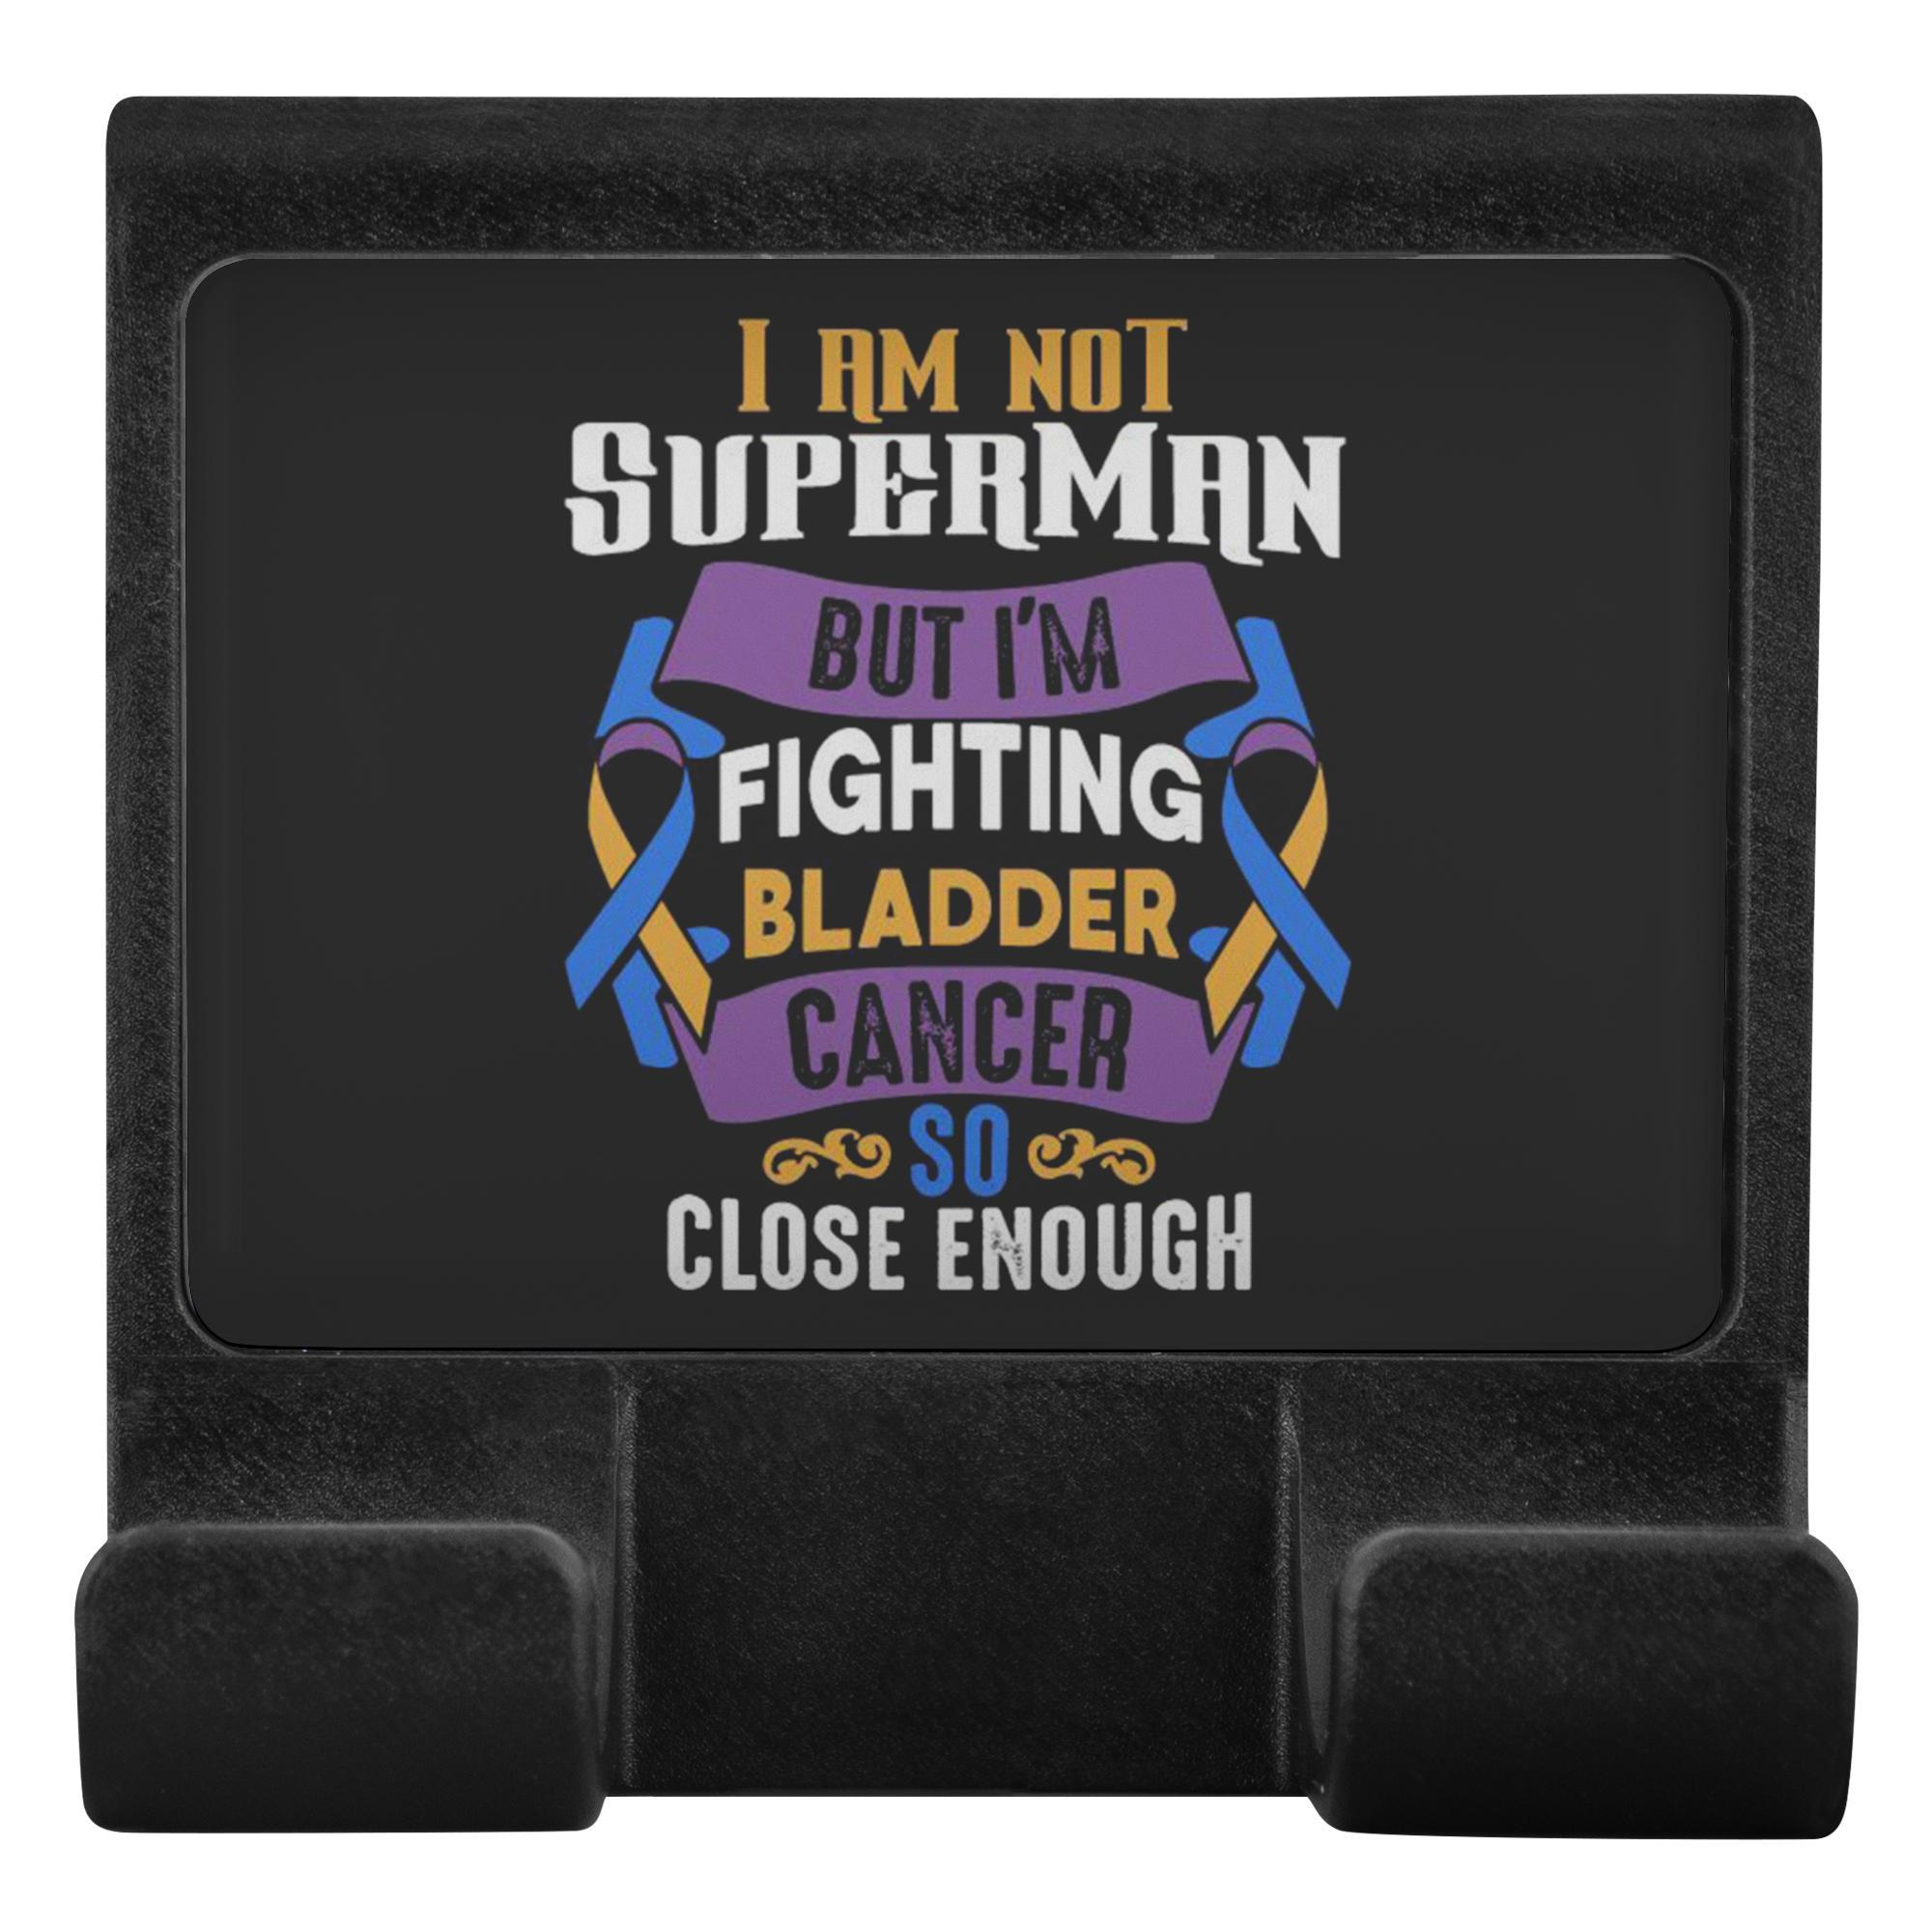 Not Superman But Fighting Bladder Cancer So Close Enough Phone Monitor Holder-Moniclip-Moniclip-JoyHip.Com